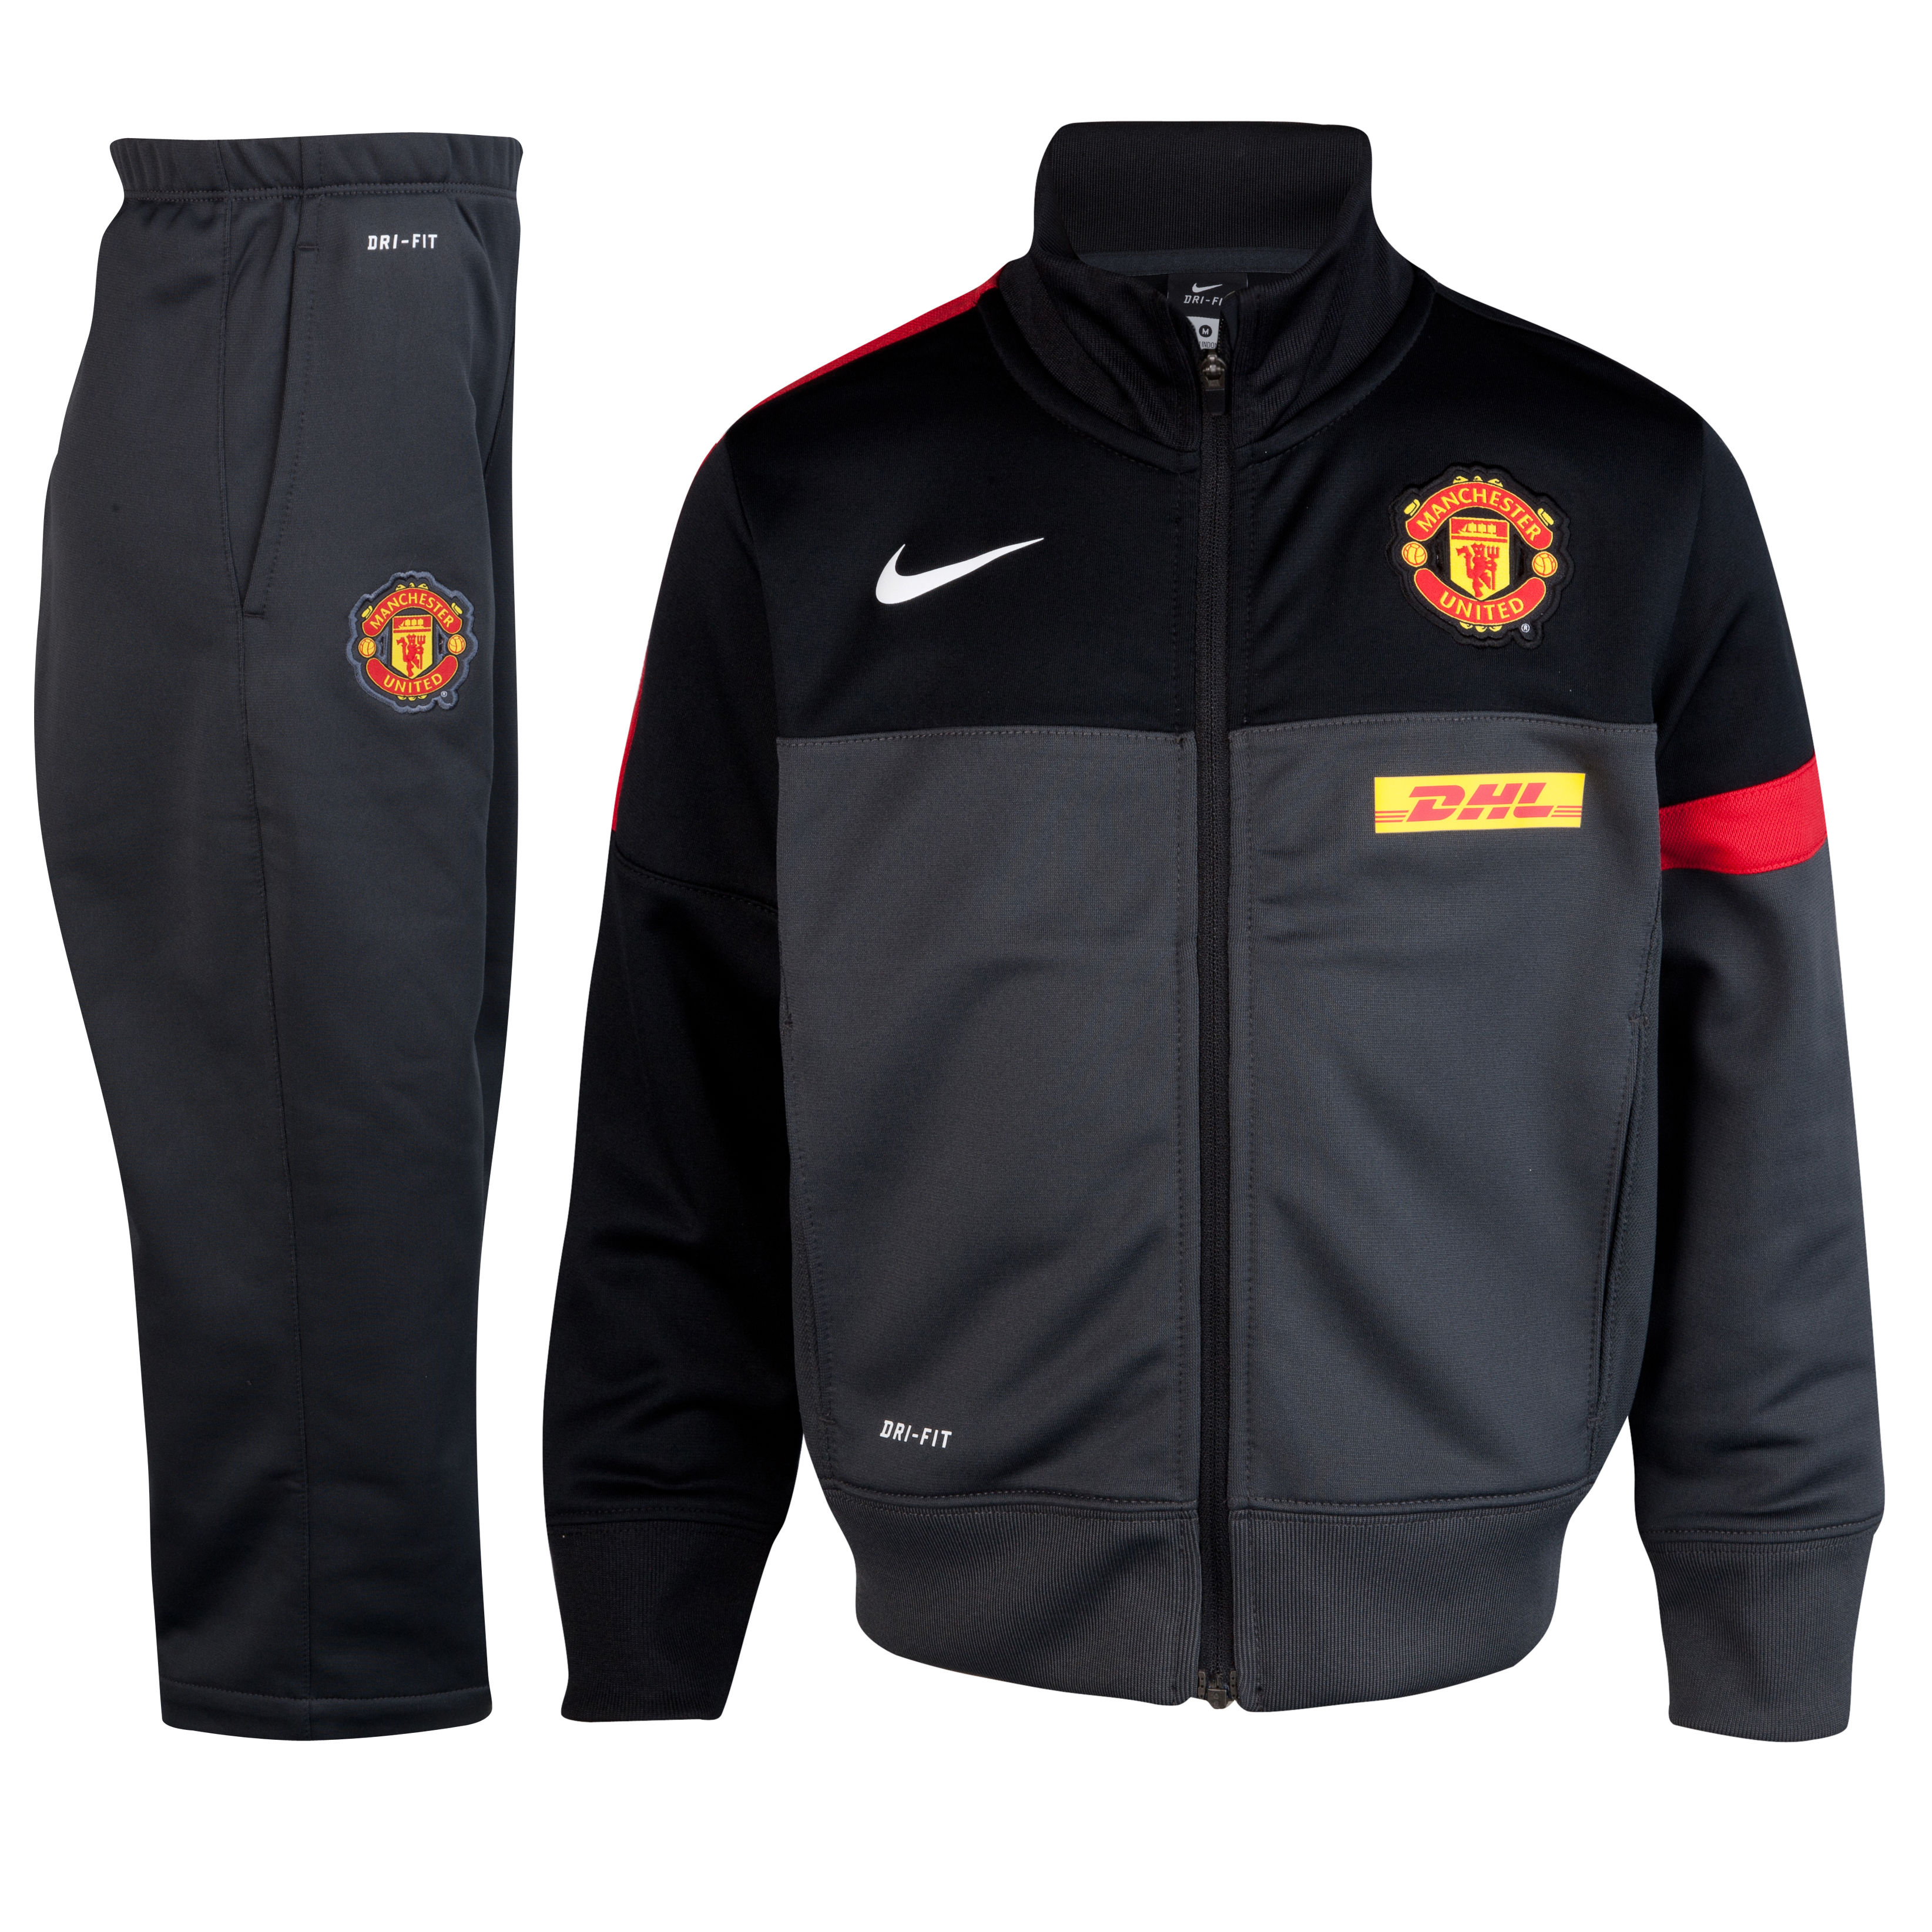 Manchester United Sideline Warm-up Knit Tracksuit - Anthracite/Black/Diablo Red/White- Little Kids